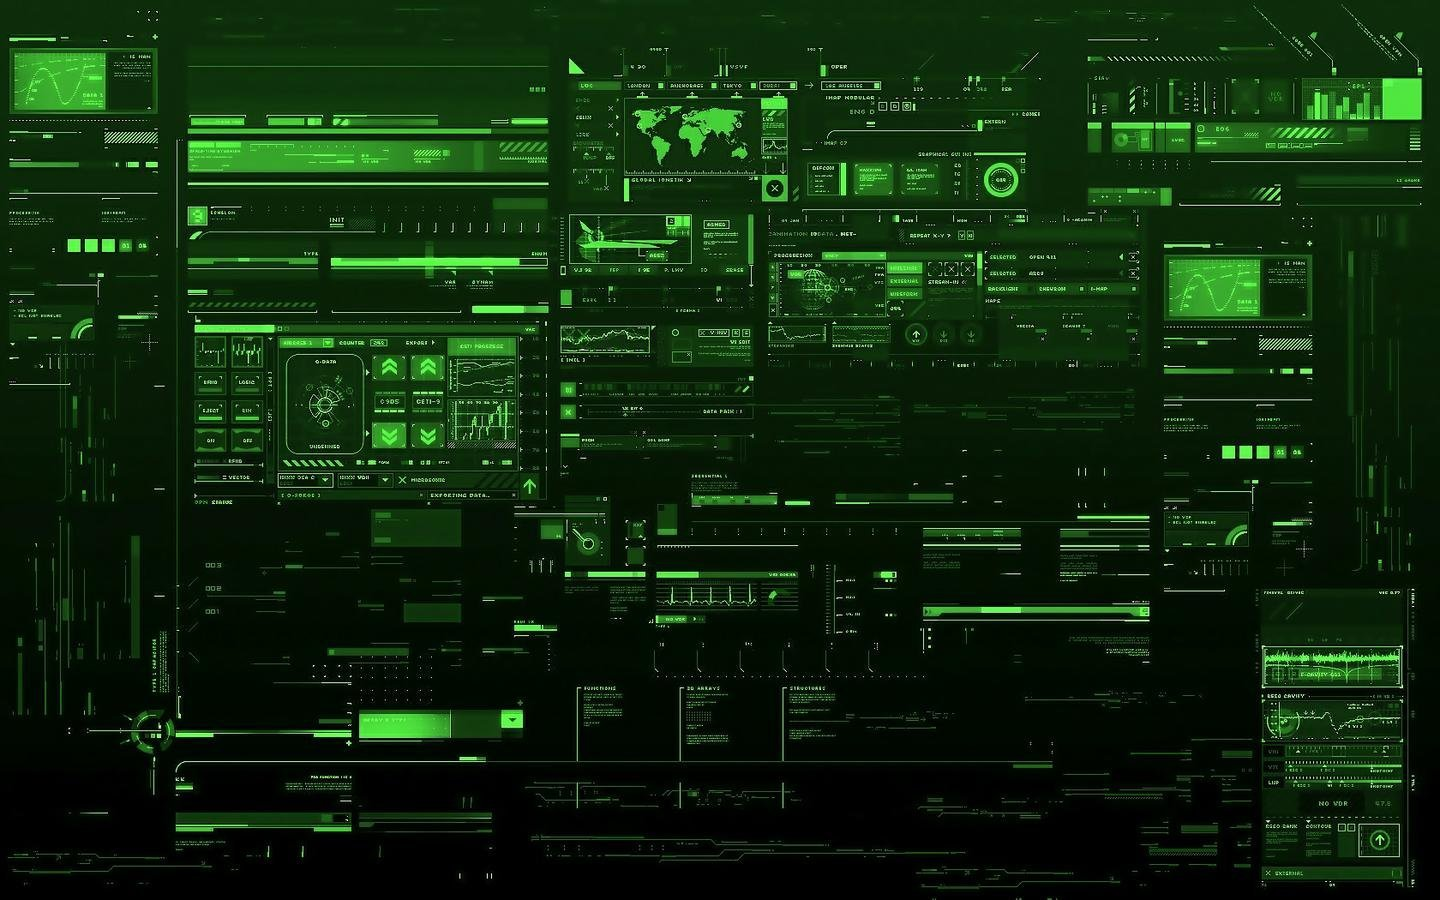 Green_TECH_WALL_Wallpaper_1440x900_wallpaperhere